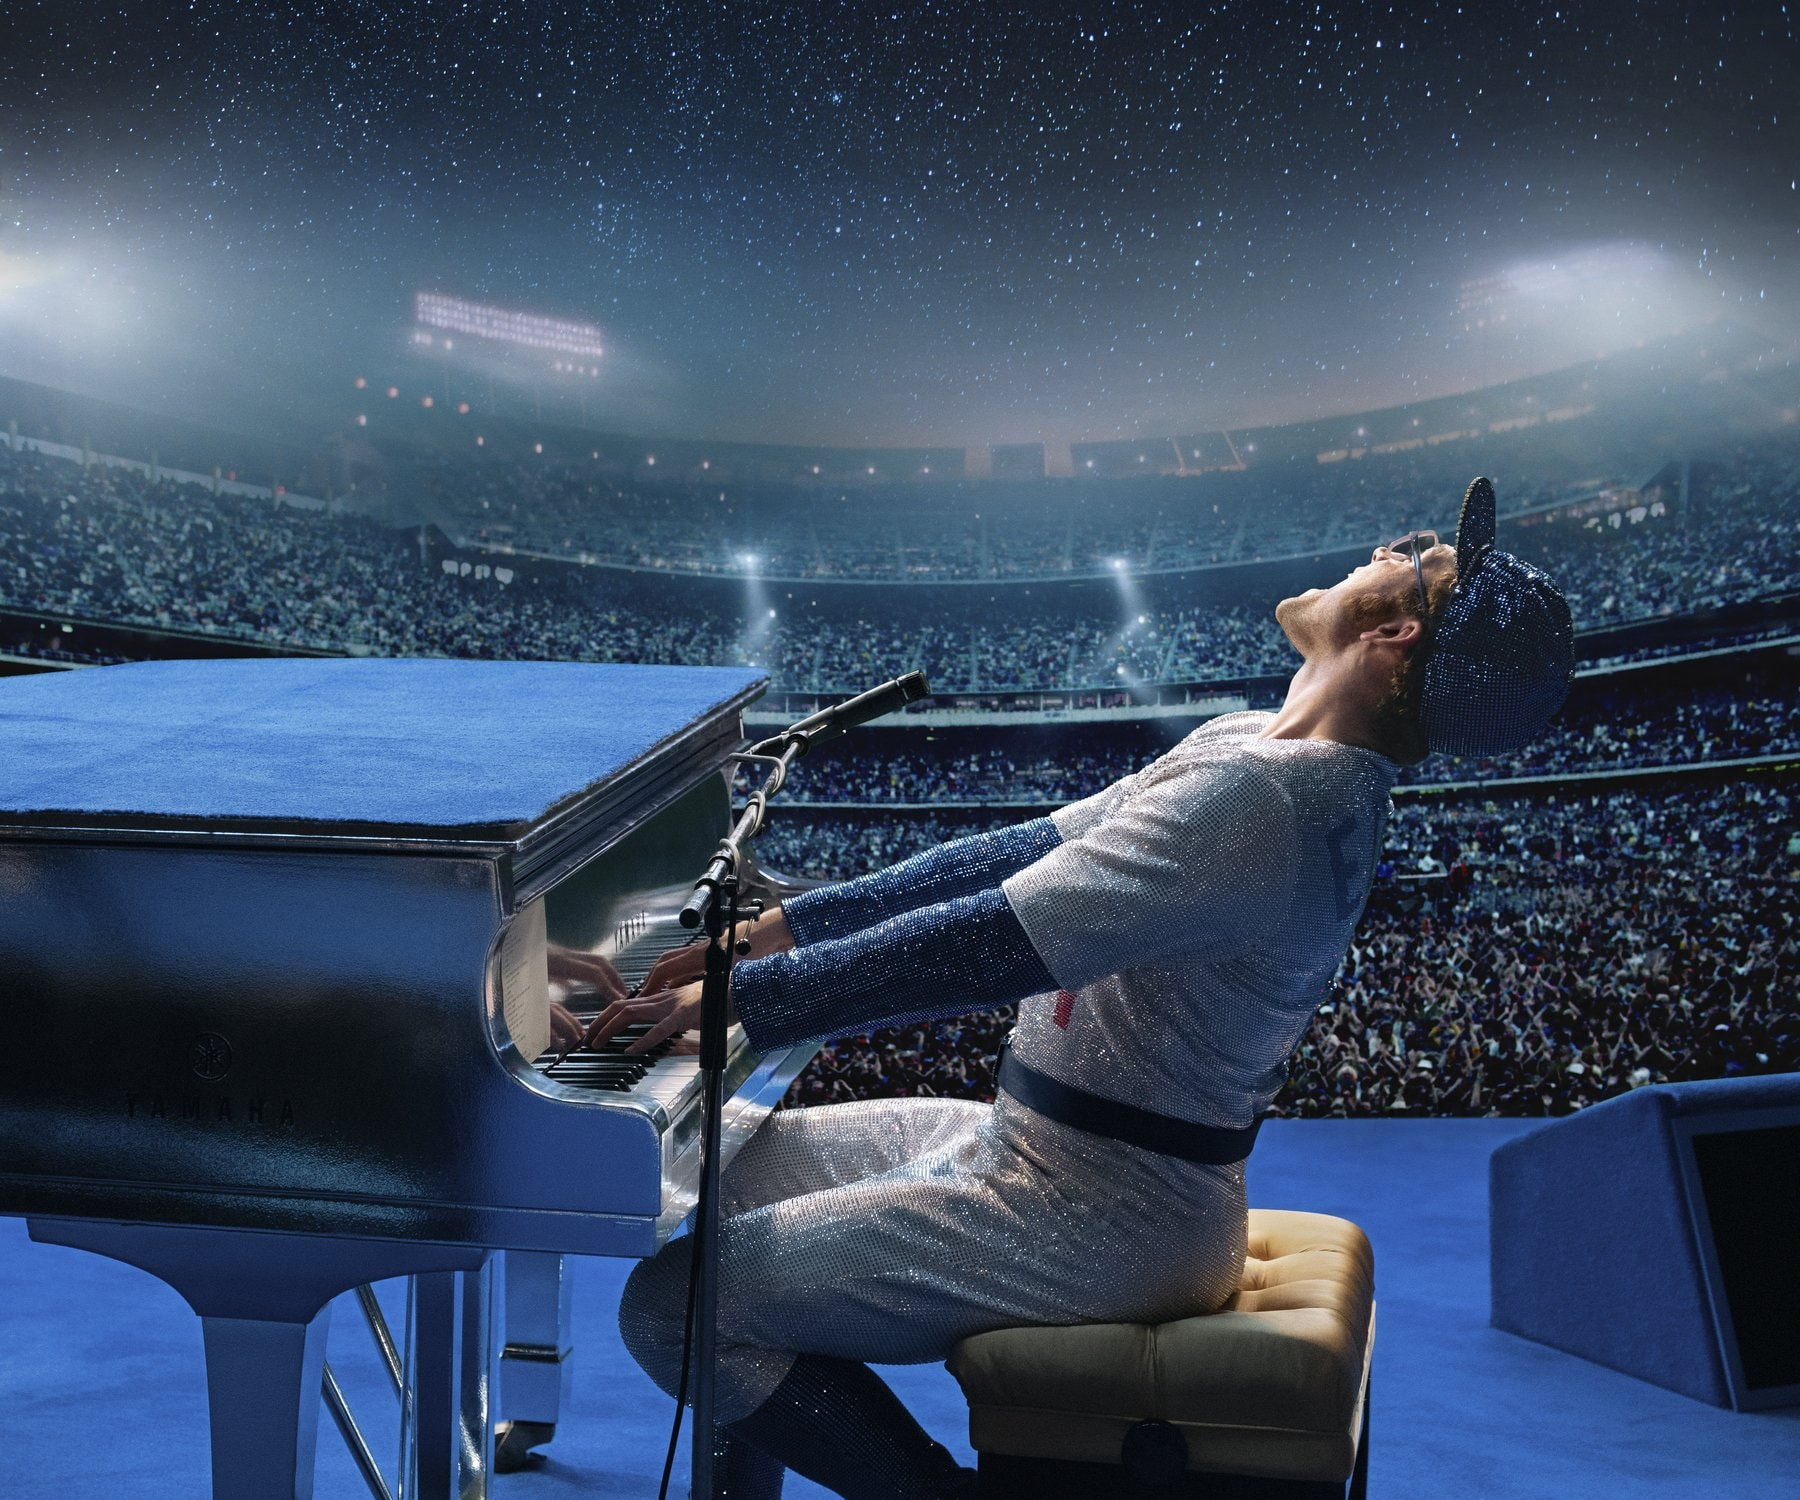 Rocketman (May 31) — Taron Egerton uses his own voice to play Elton John in this fantasy musical biopic, with Jamie Bell and Richard Madden.  (David Appleby/ Paramount Pictures via AP)